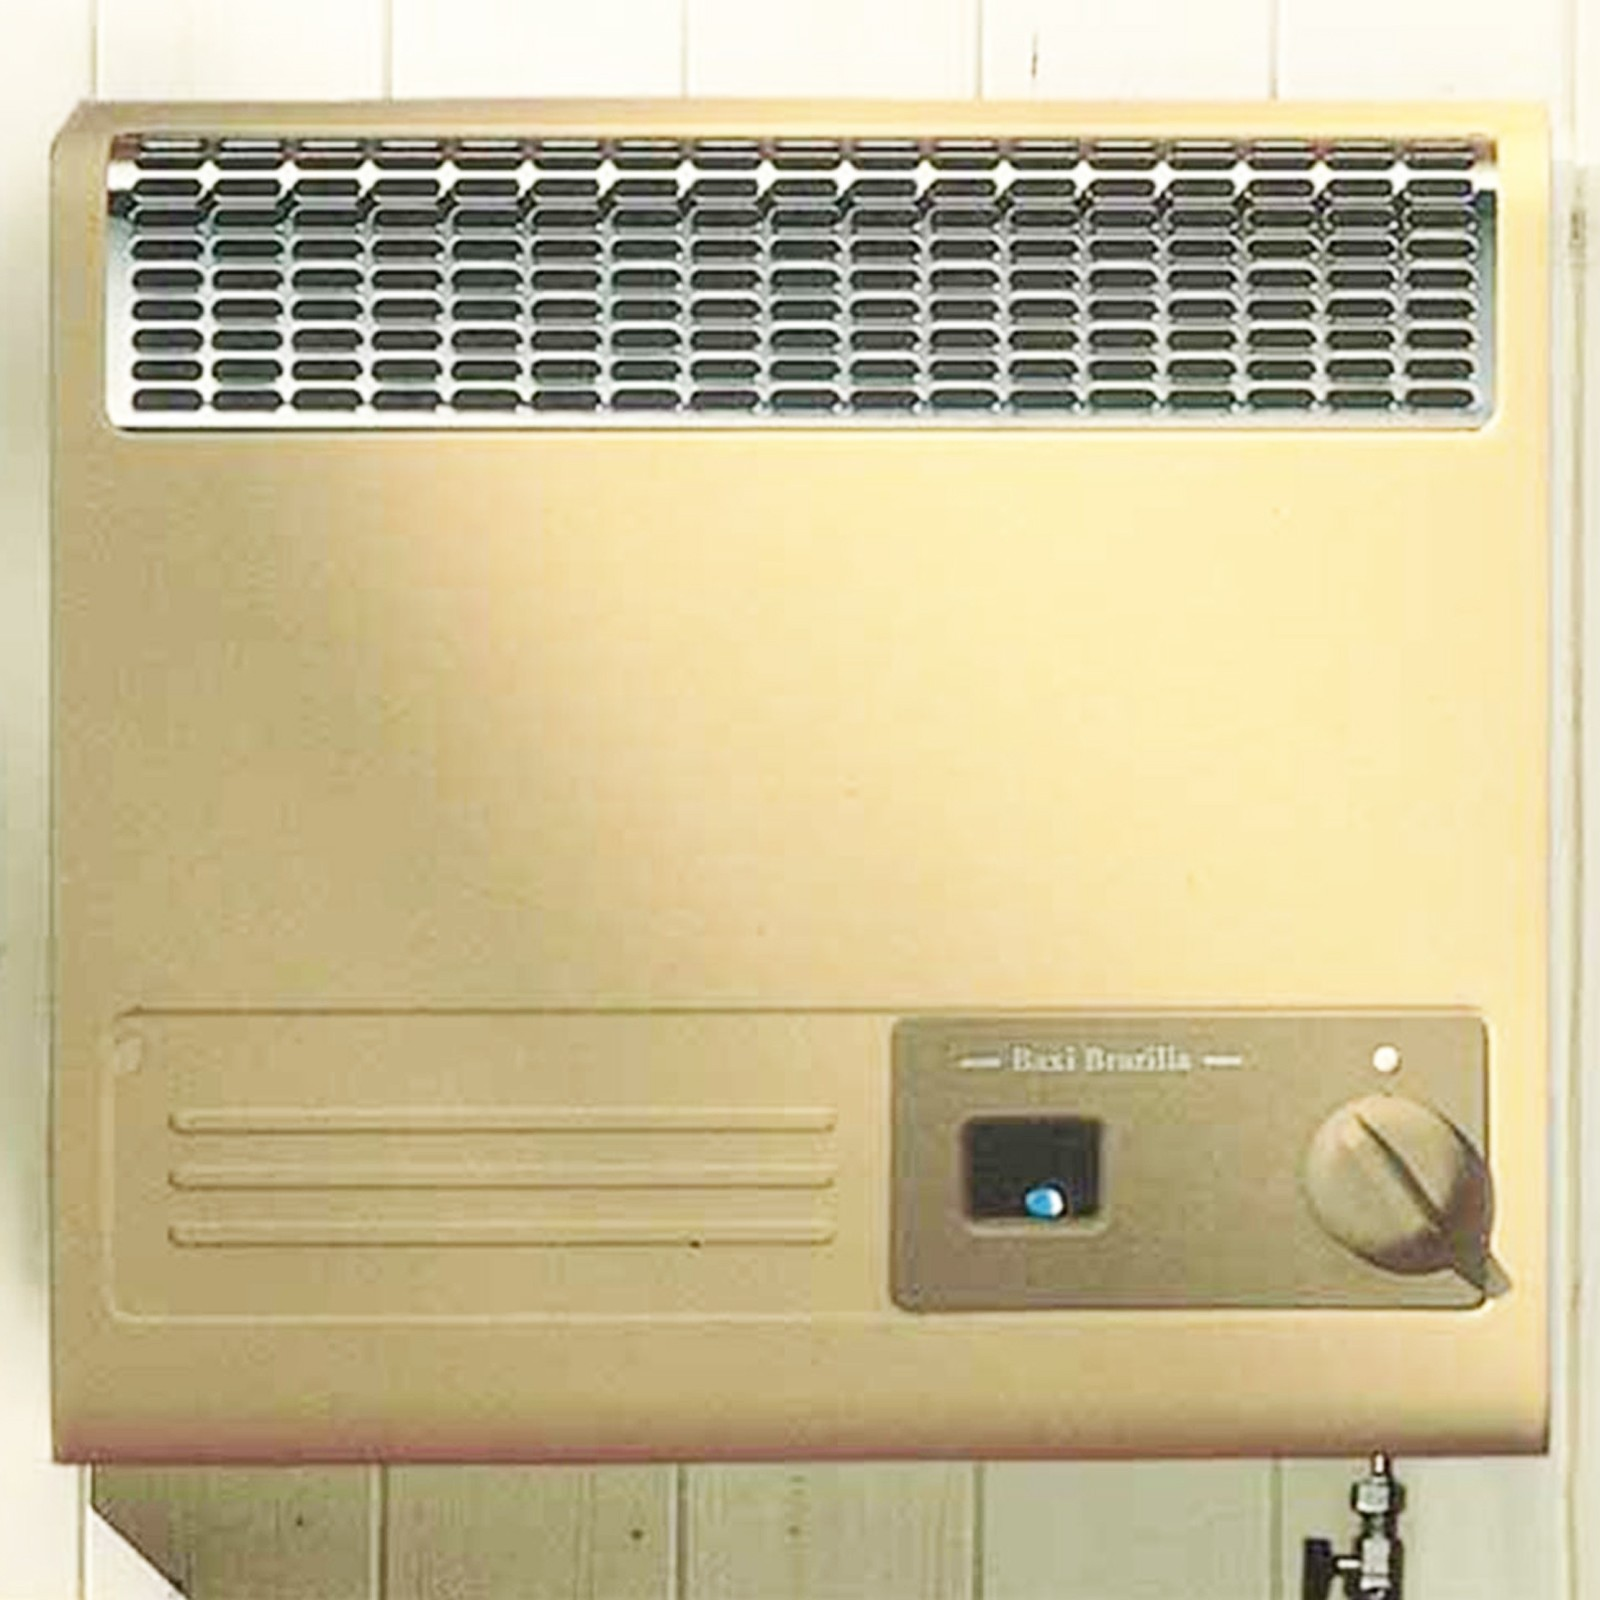 Wall Mounted | Baxi Brazilia F5 Balanced Flue Wall Heater | Low Prices